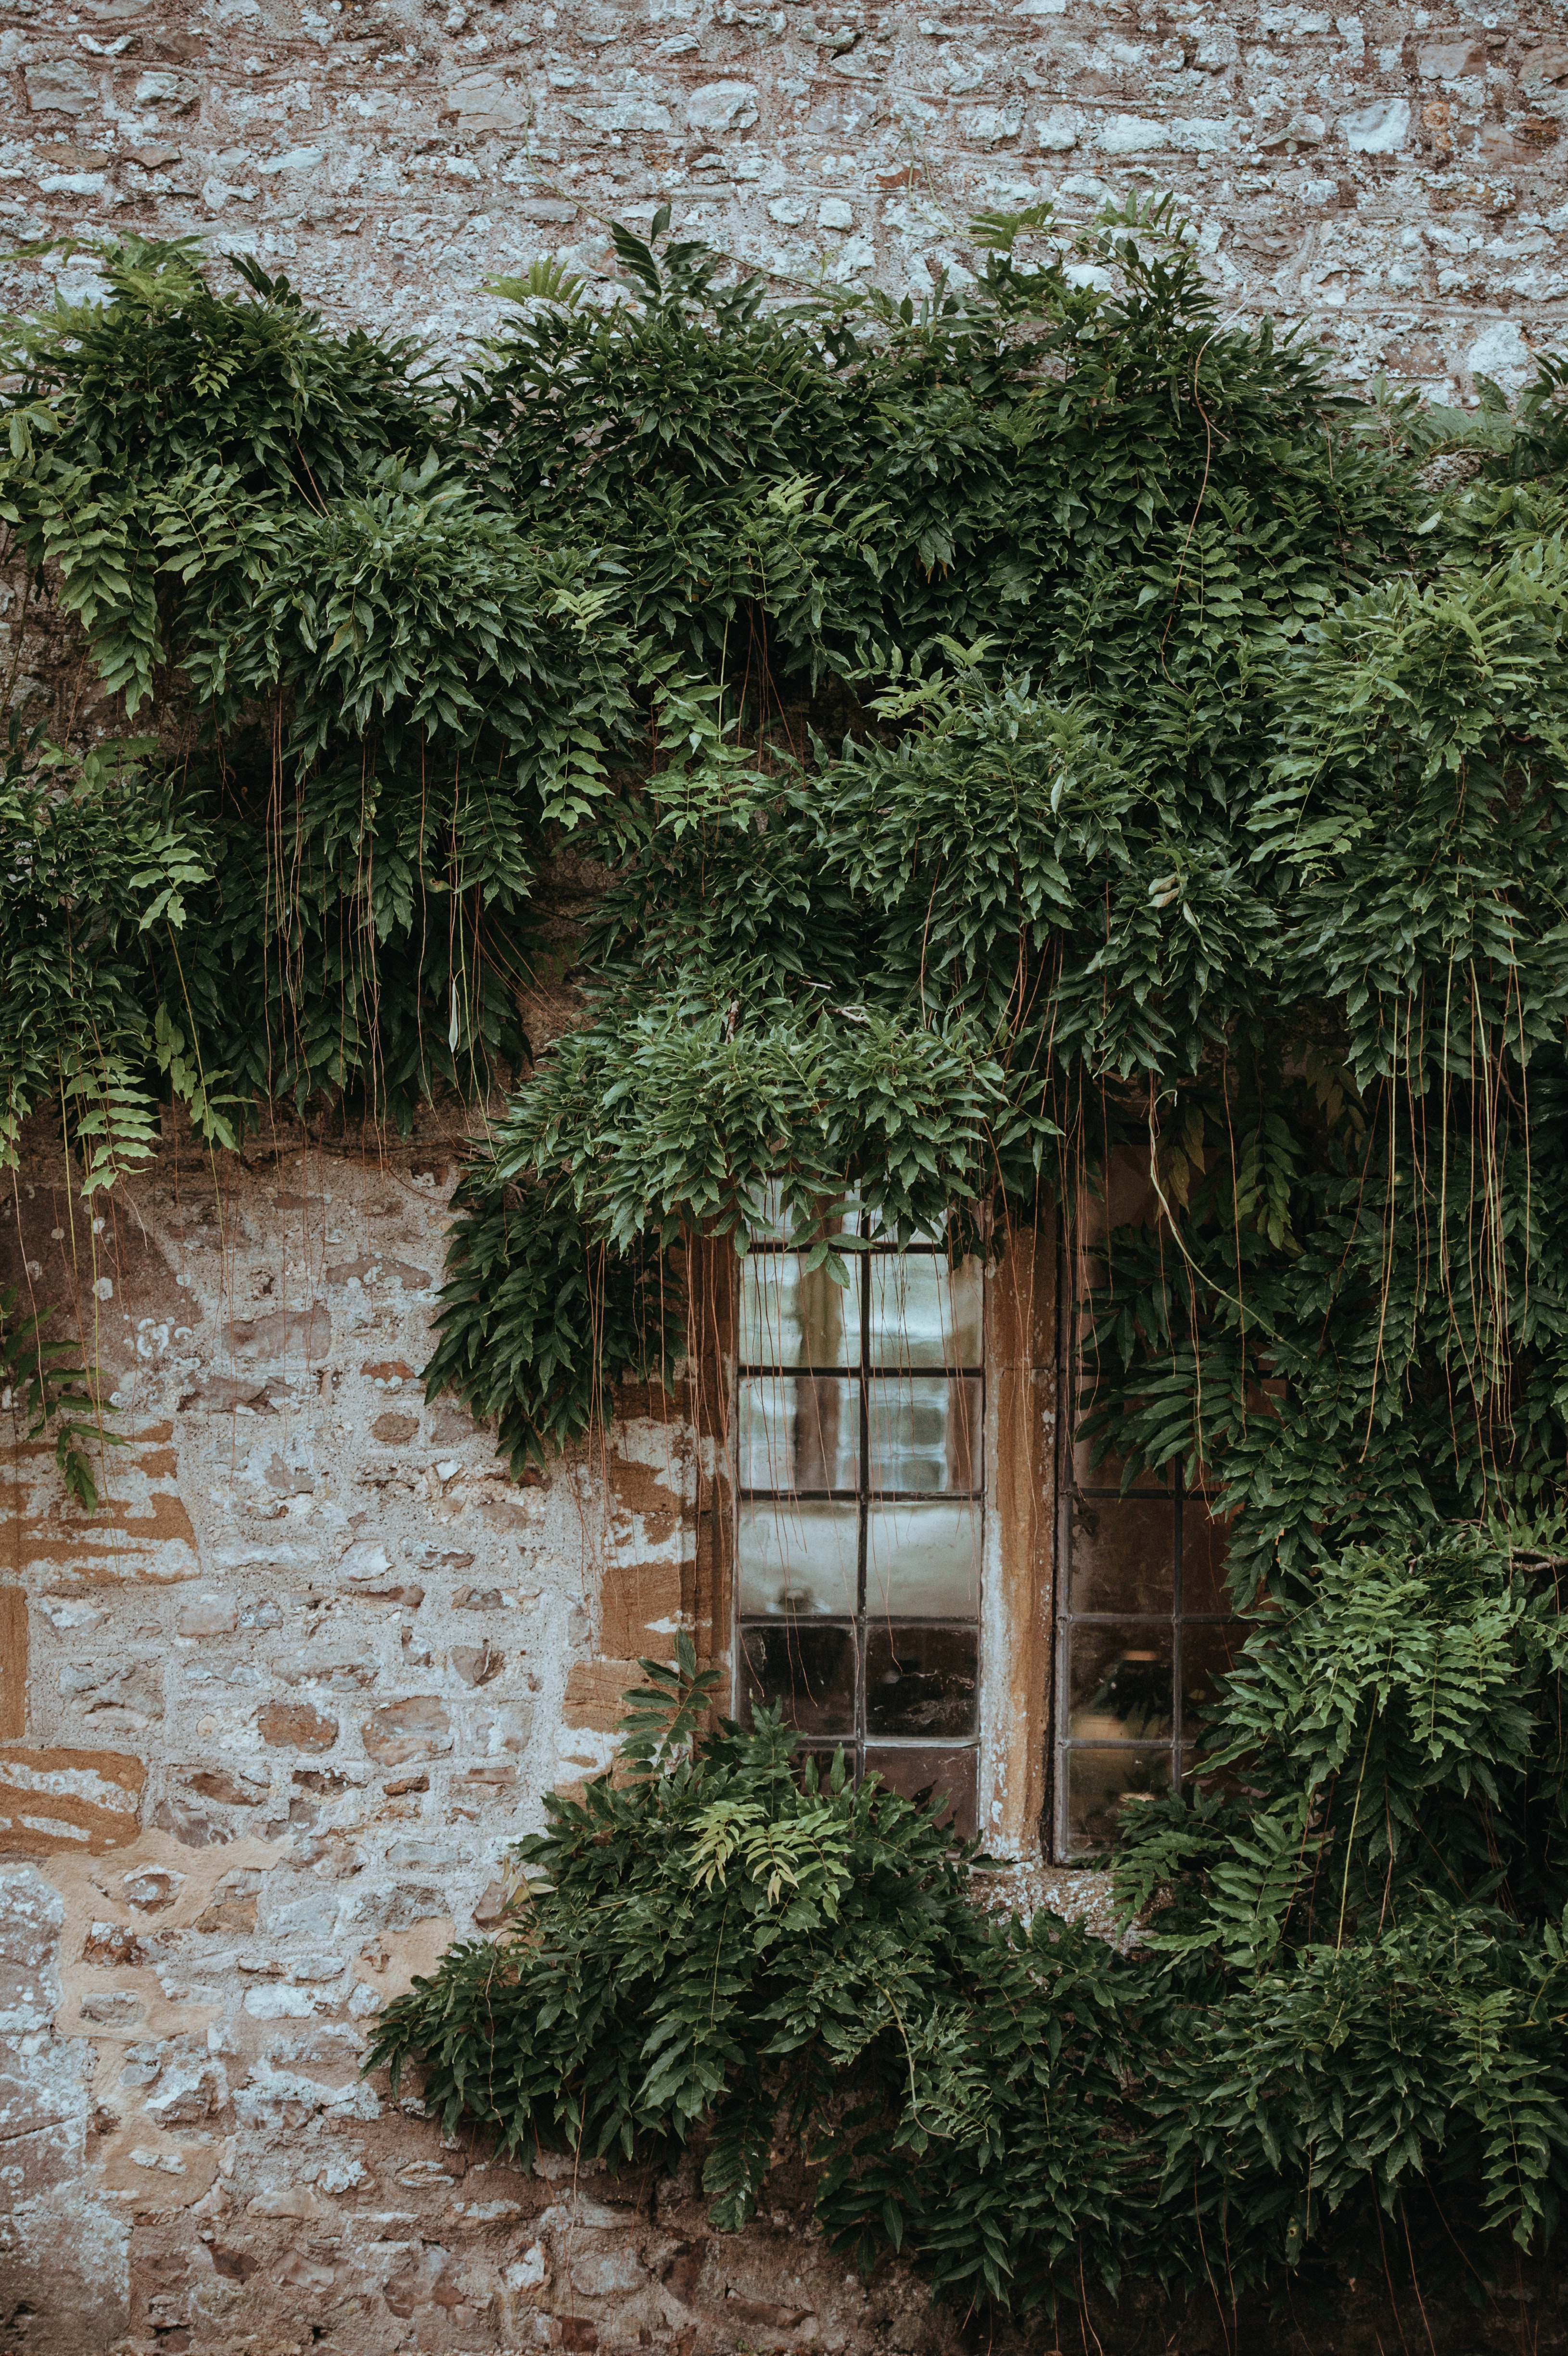 glass window surrounded by green leafed plants